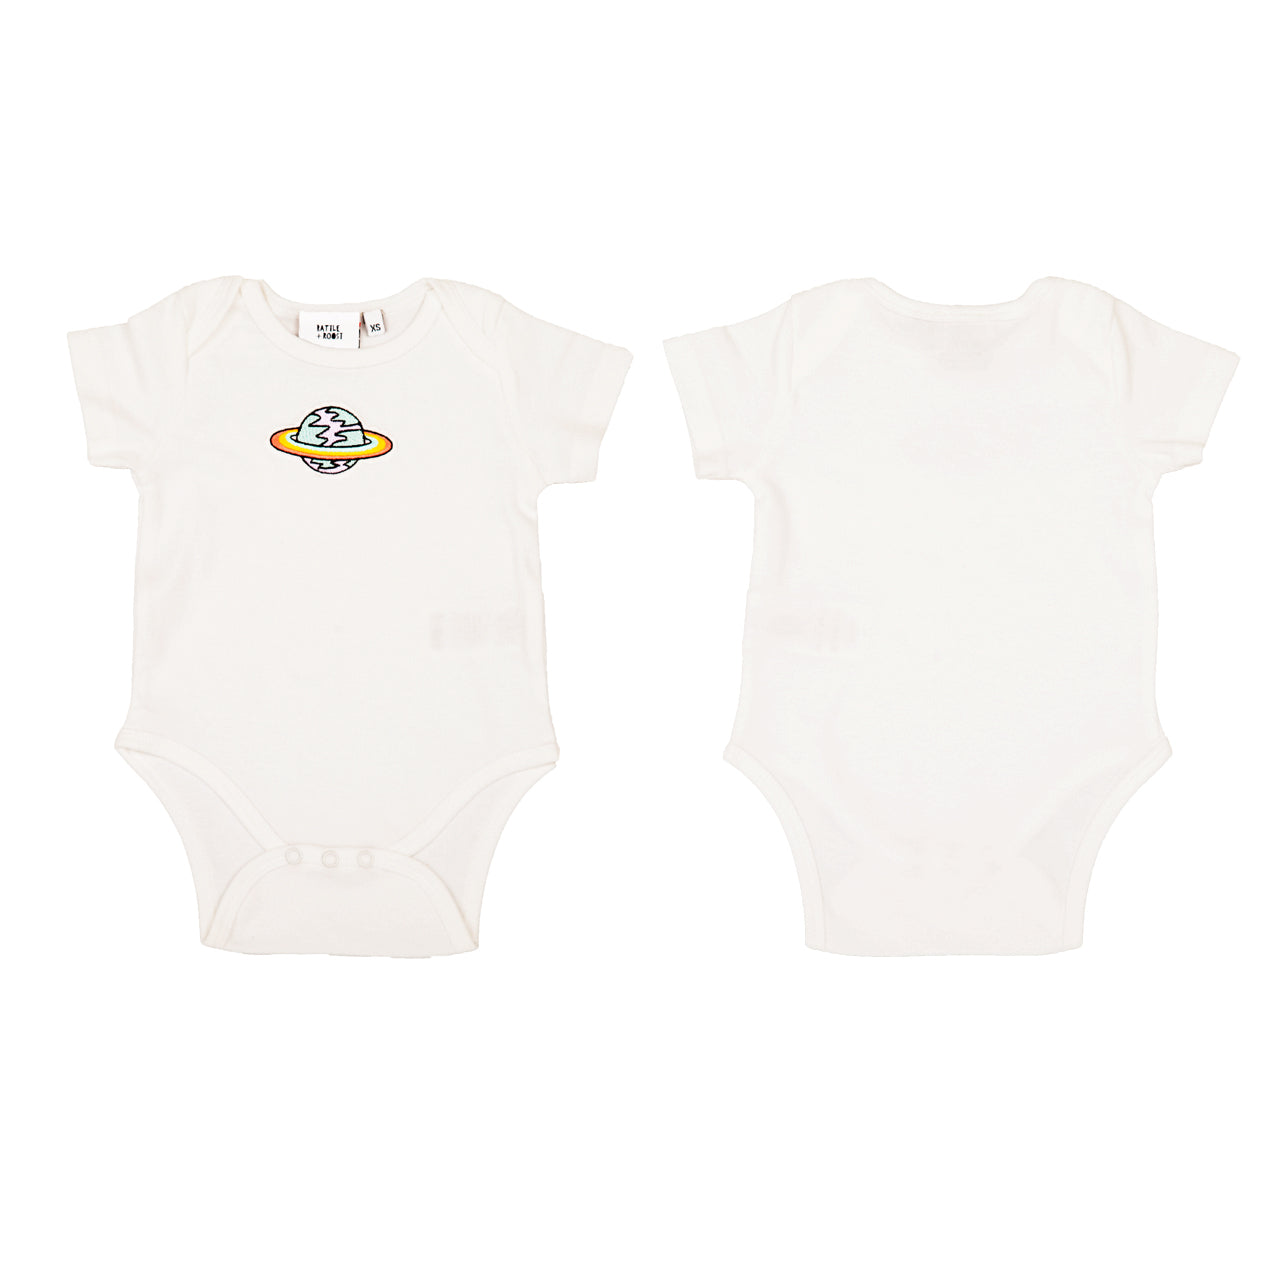 Space Baby Baby Clothes – Shop for Space Baby Clothes Online – Rattle and Roost